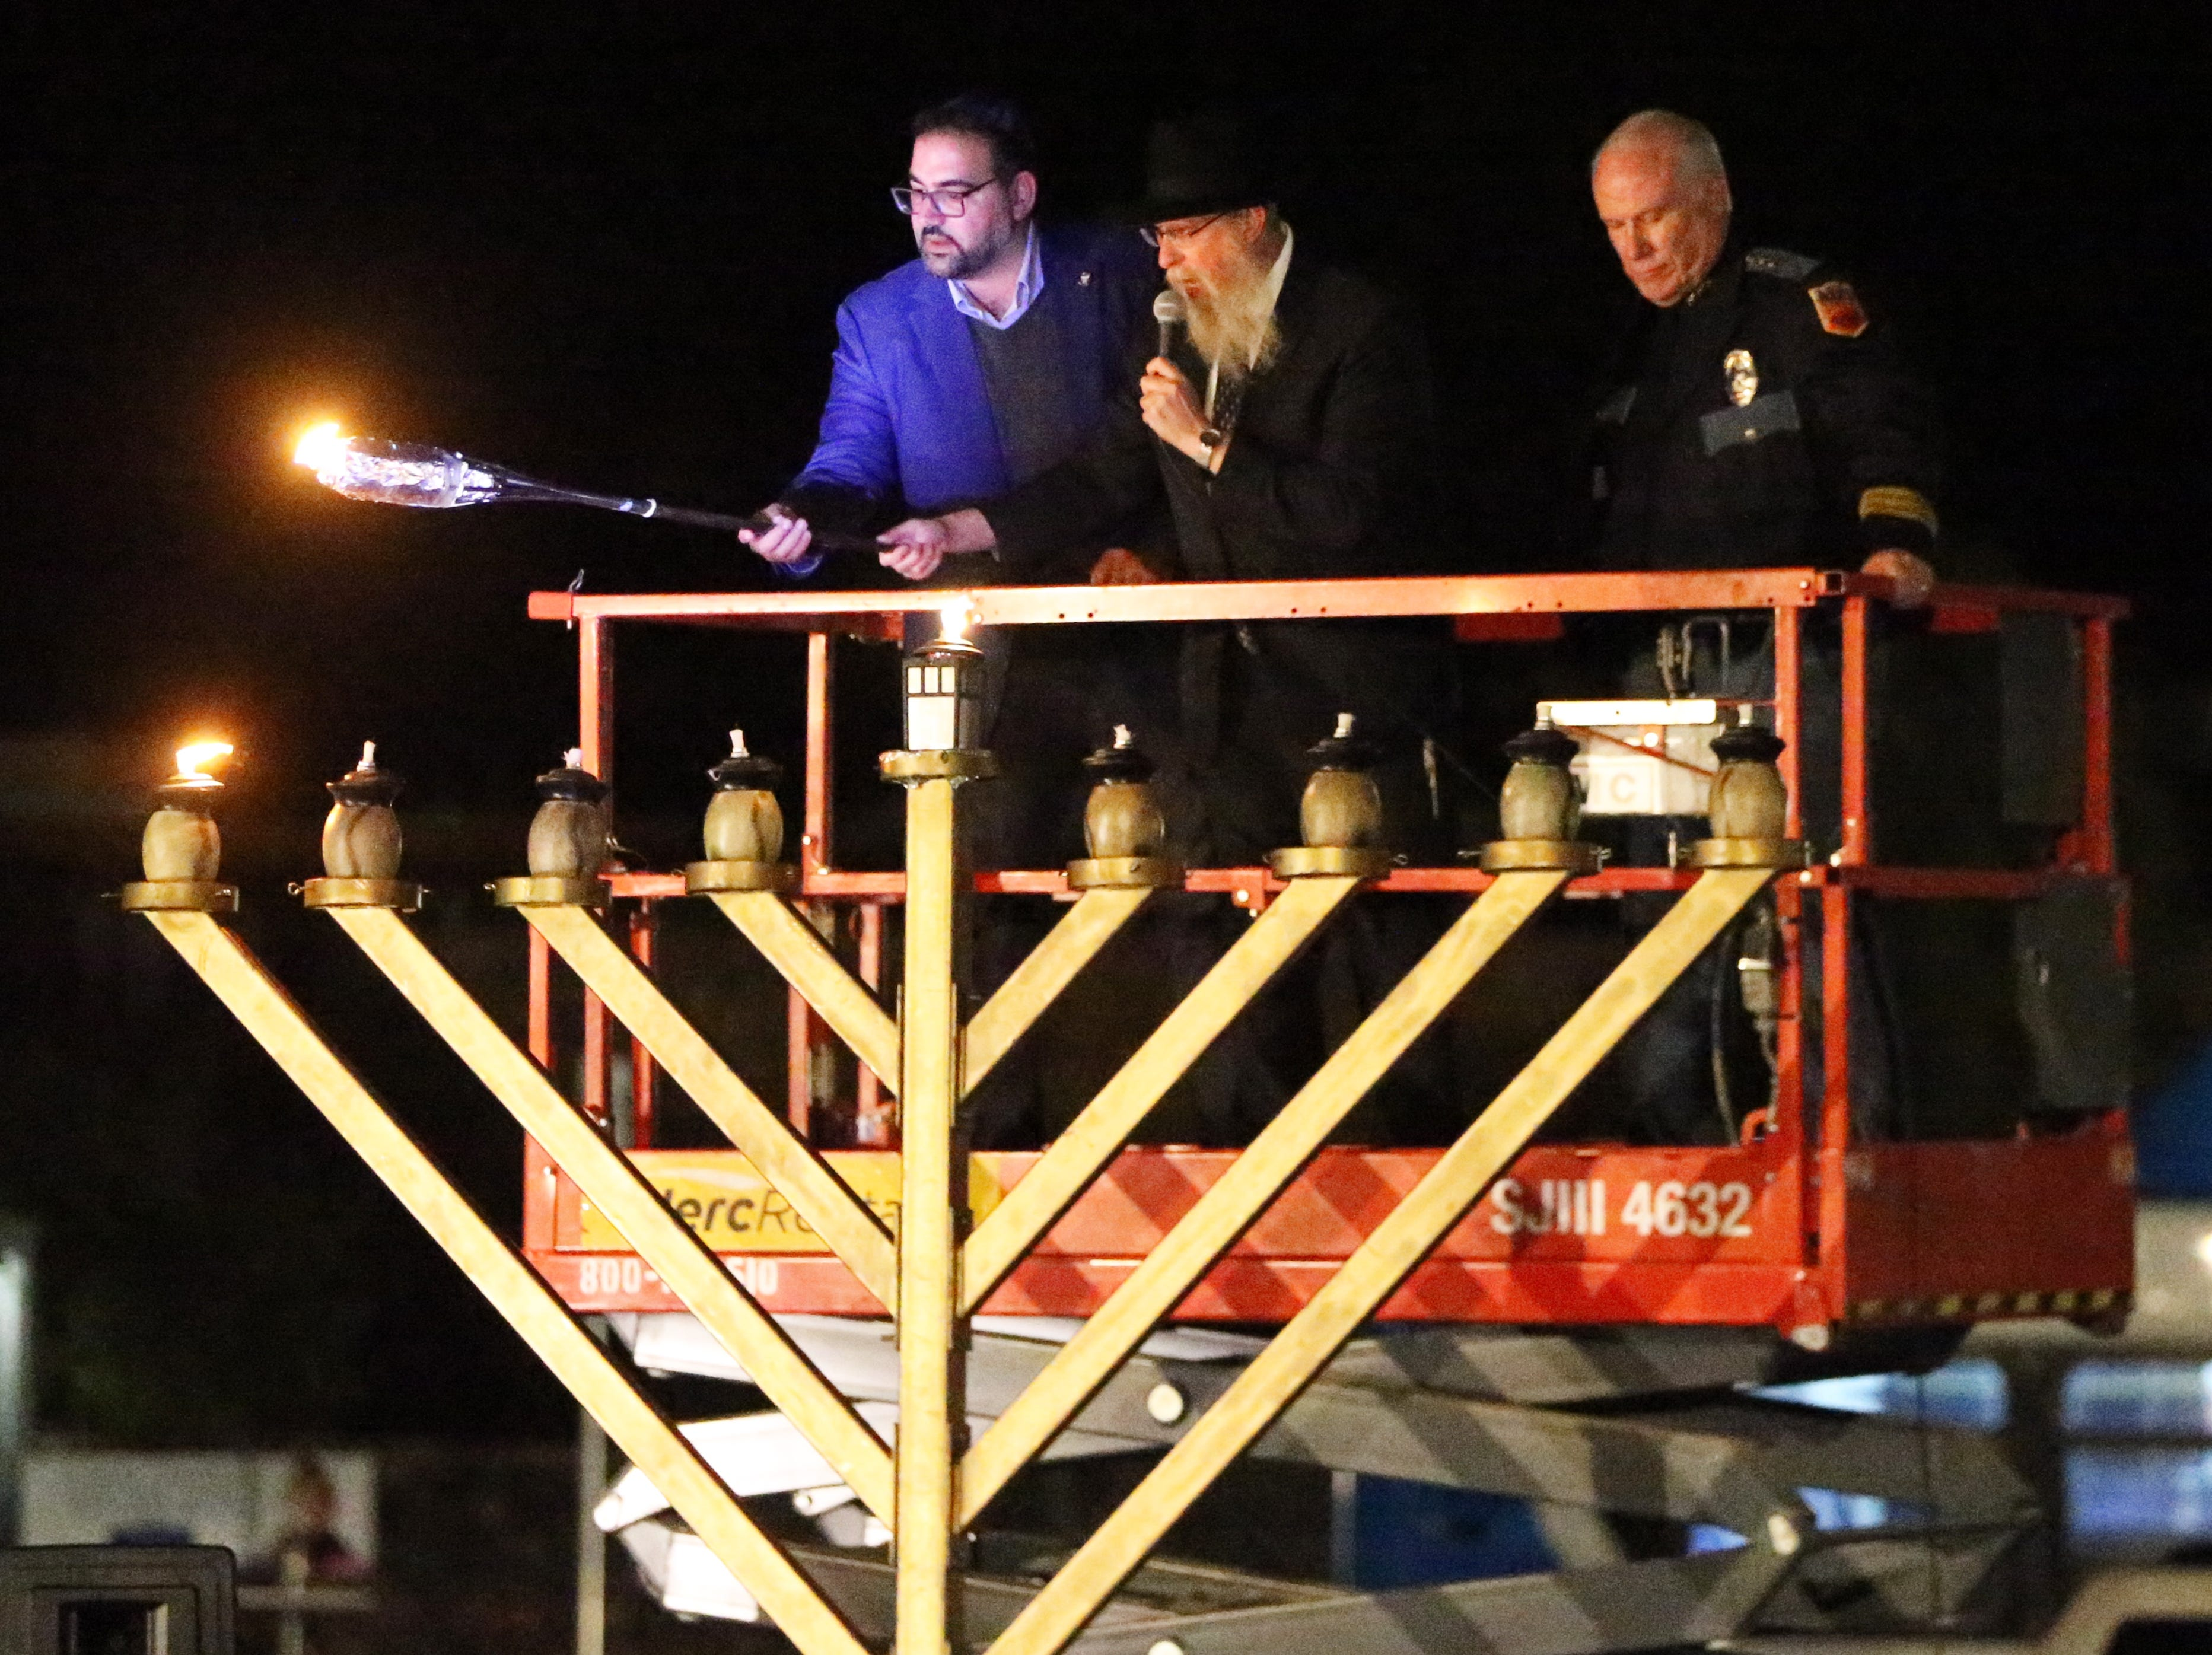 Rabbi Yisroel Greenberg, center, of Chabad Lubavitch of El Paso at 6615 Westwind Drive leads the lighting of a large menorah with city Rep. Peter Svarzbein, left, and assistant chief of police Peter Pacillas Sunday outside the synagogue in West El Paso. The event marked the beginning of Chanukah with the lighting of the first candle on the menorah. Seven more will be lit on subsequent nights. The Jewish holiday commemorates the rededication of the Holy Temple in Jerusalem following the defeat of the Syrian-Greek army in the second Century BCE. While planning to light the Temple menorah they had only a small supply of pure olive oil to use as fuel, but the small supply miraculously lasted all eight nights. Chabad Lubavitch also held a Chanukah Playland and the lighting of a 'Toynorah' for children before the Menorah lighting.